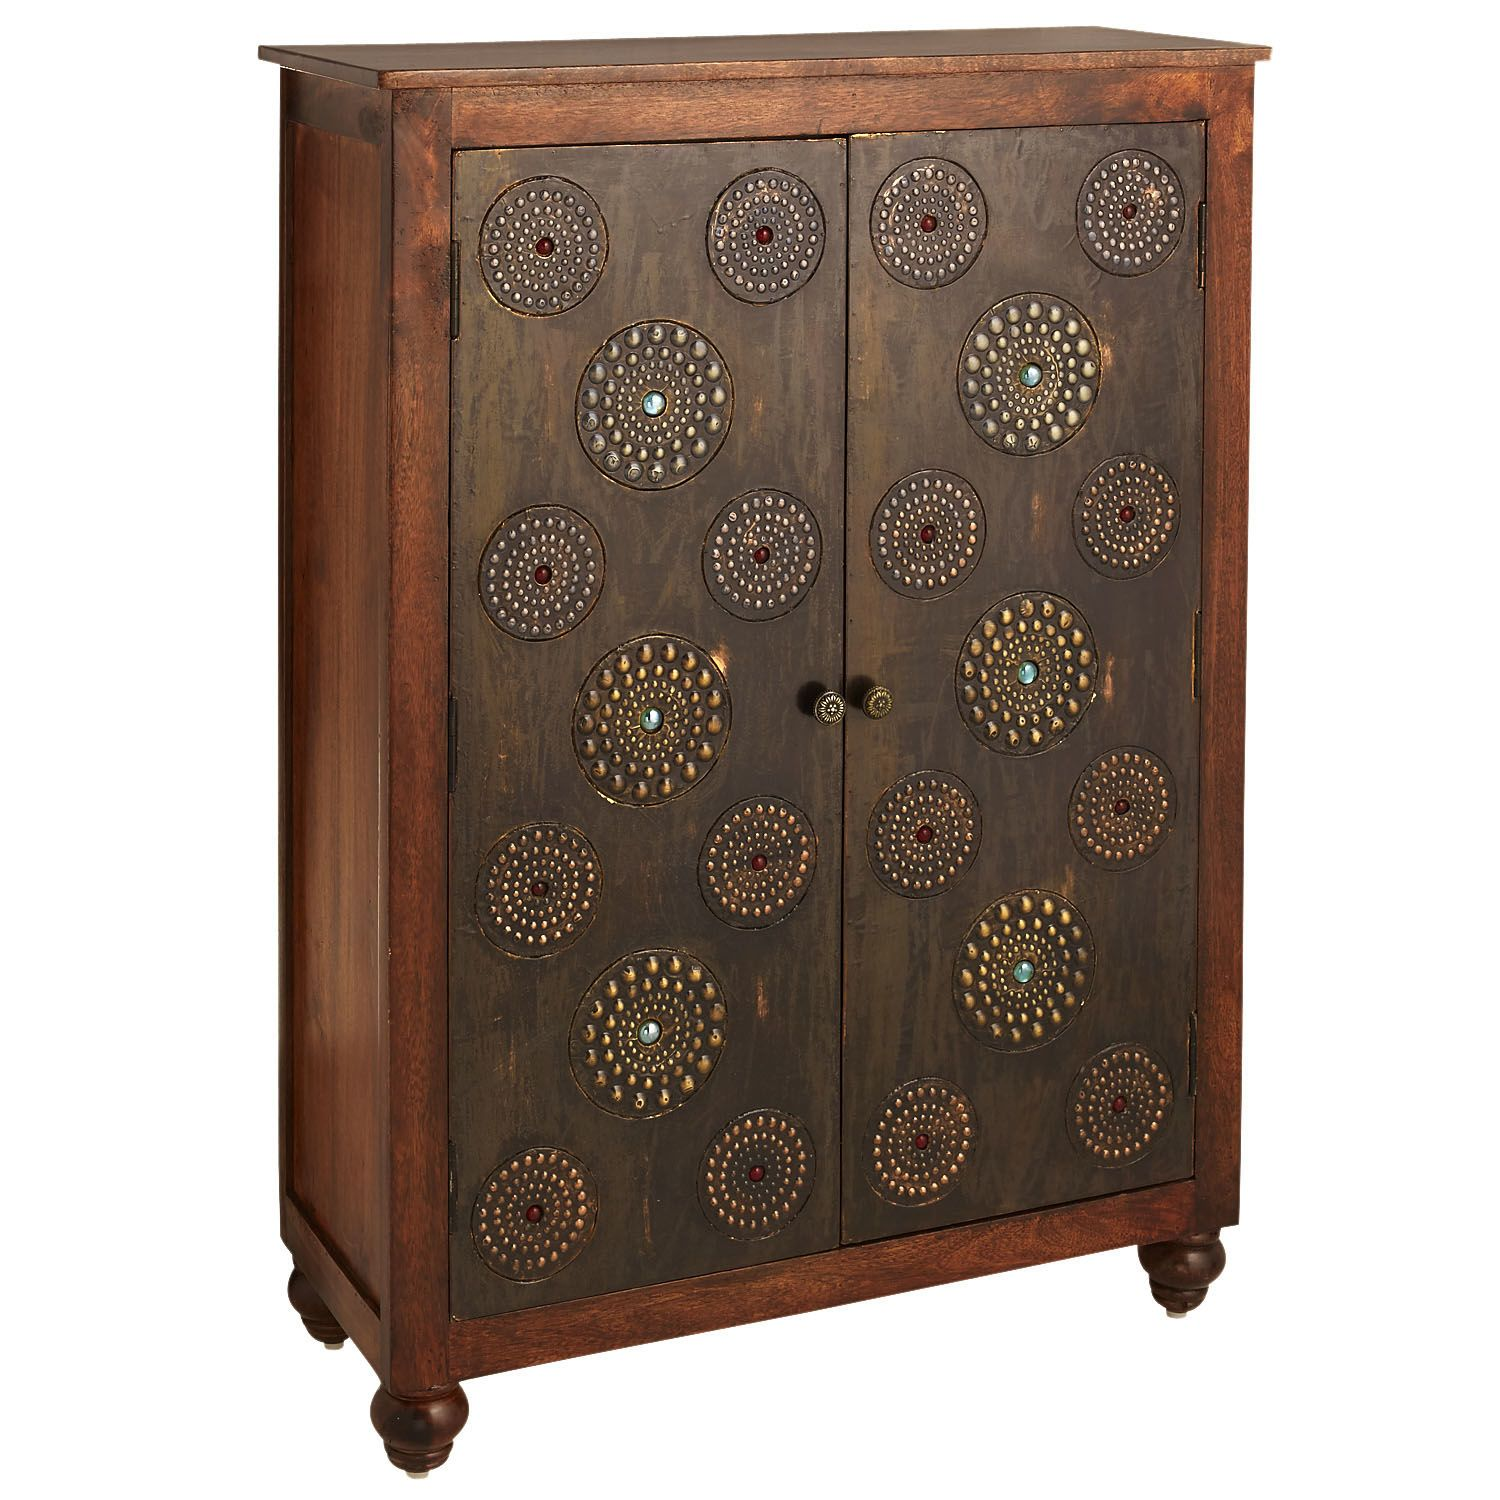 Kanpur Cabinet Dining Rooms Pier 1 Imports And Cabinets # Muebles Pier Import